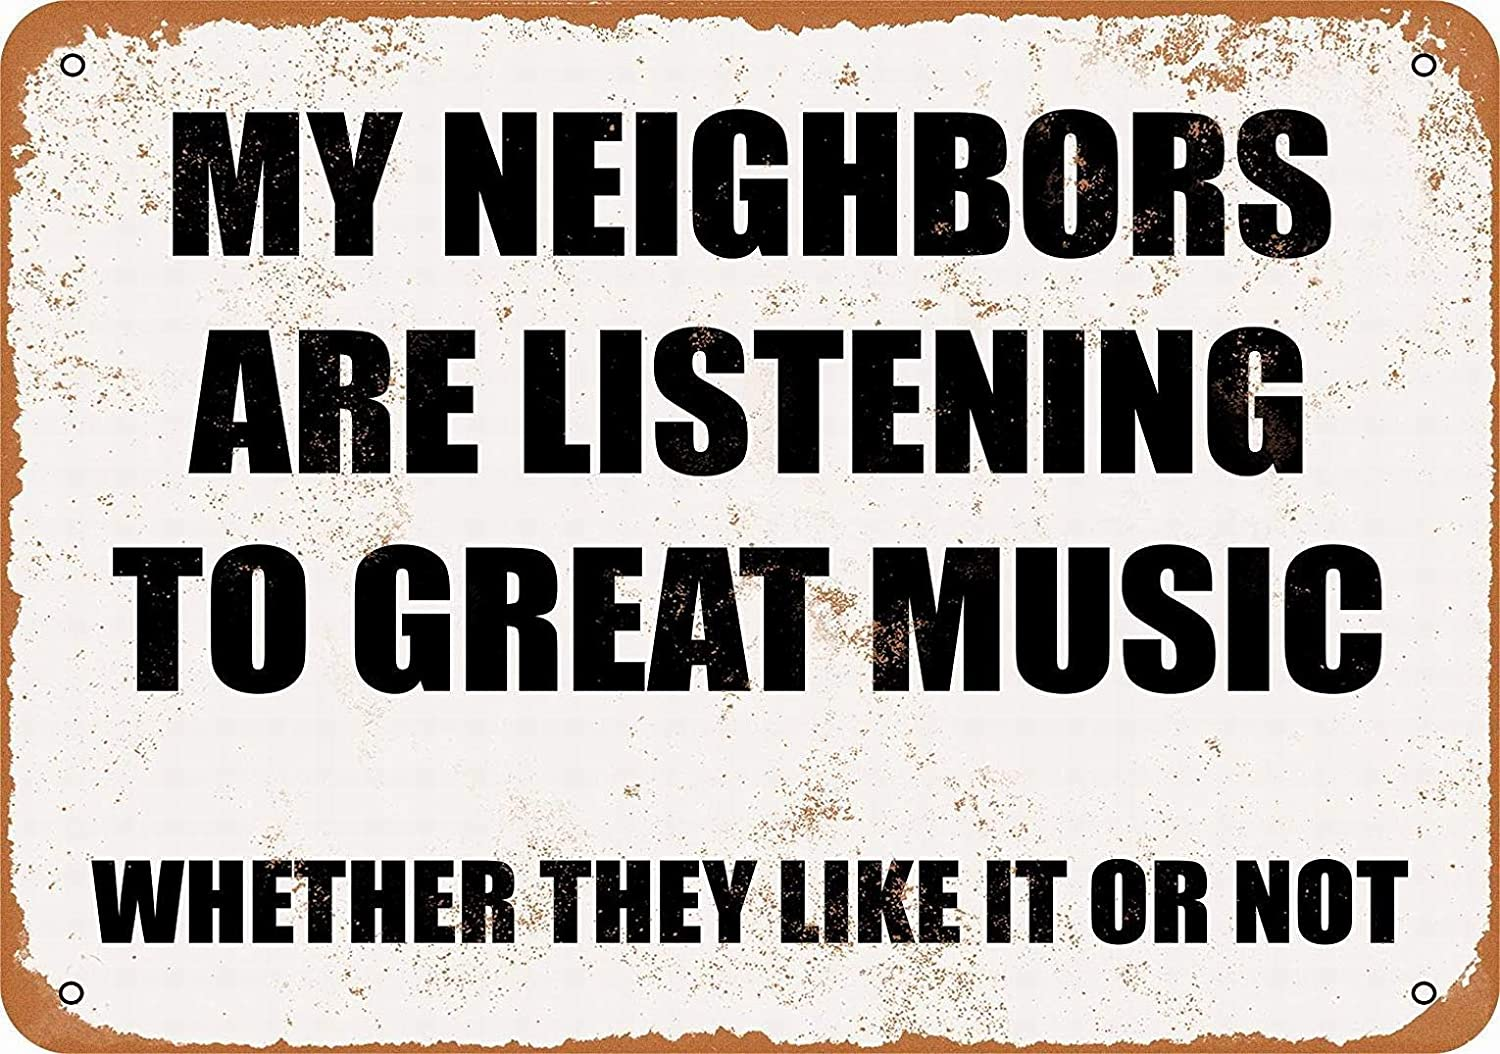 Metal Sign - My Neighbors are Listening to Great Music. Whether They Like It Not. - Retro Wall Decor Home Decor 8x12 inch